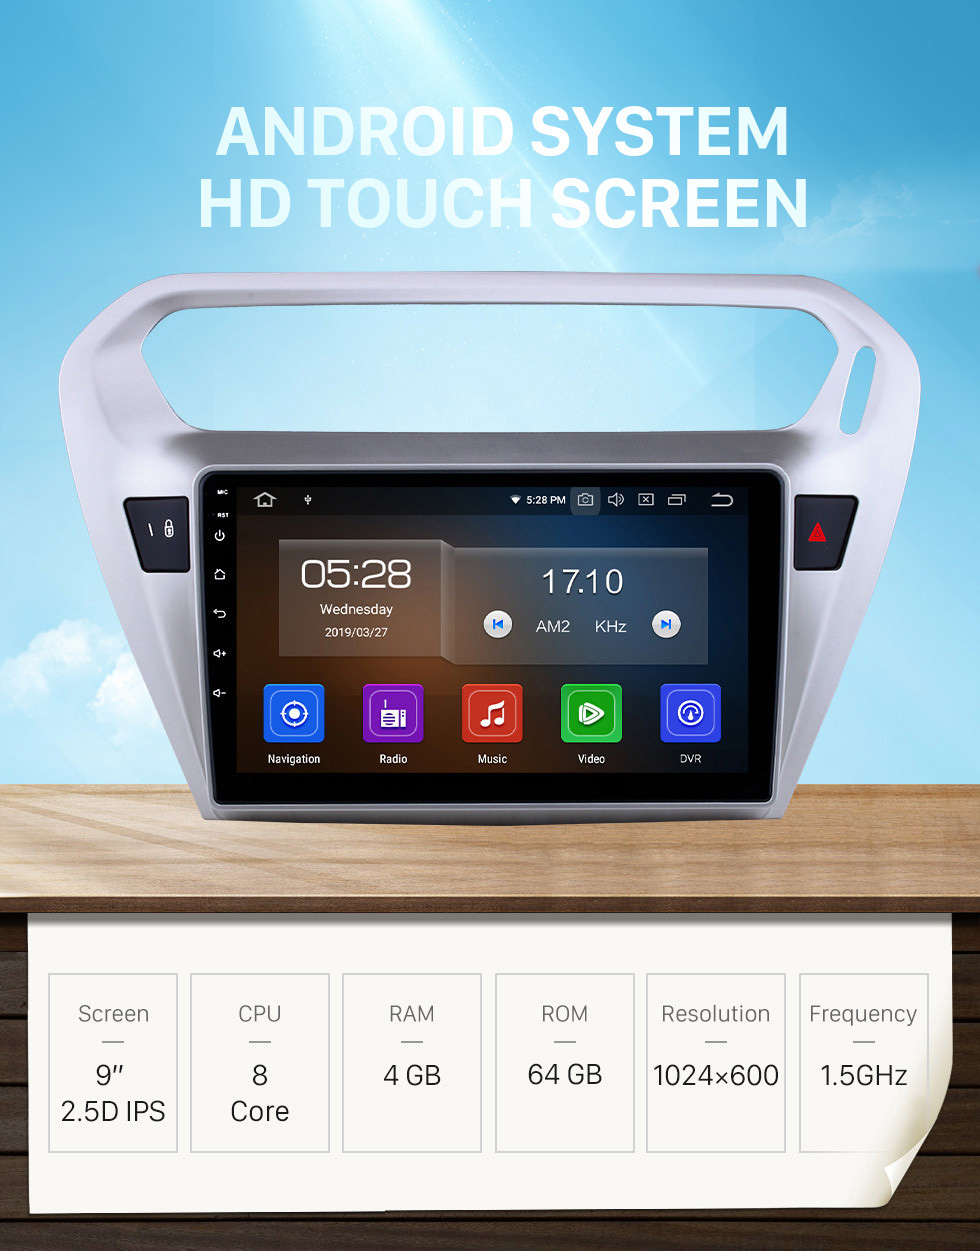 Seicane Android 10.0 9 inch GPS Navigation Radio for 2013 2014 Peugeot 301 Citroen Elysee Citroen C-Elysee Head Unit Stereo with Carplay Bluetooth USB AUX support DVR TPMS